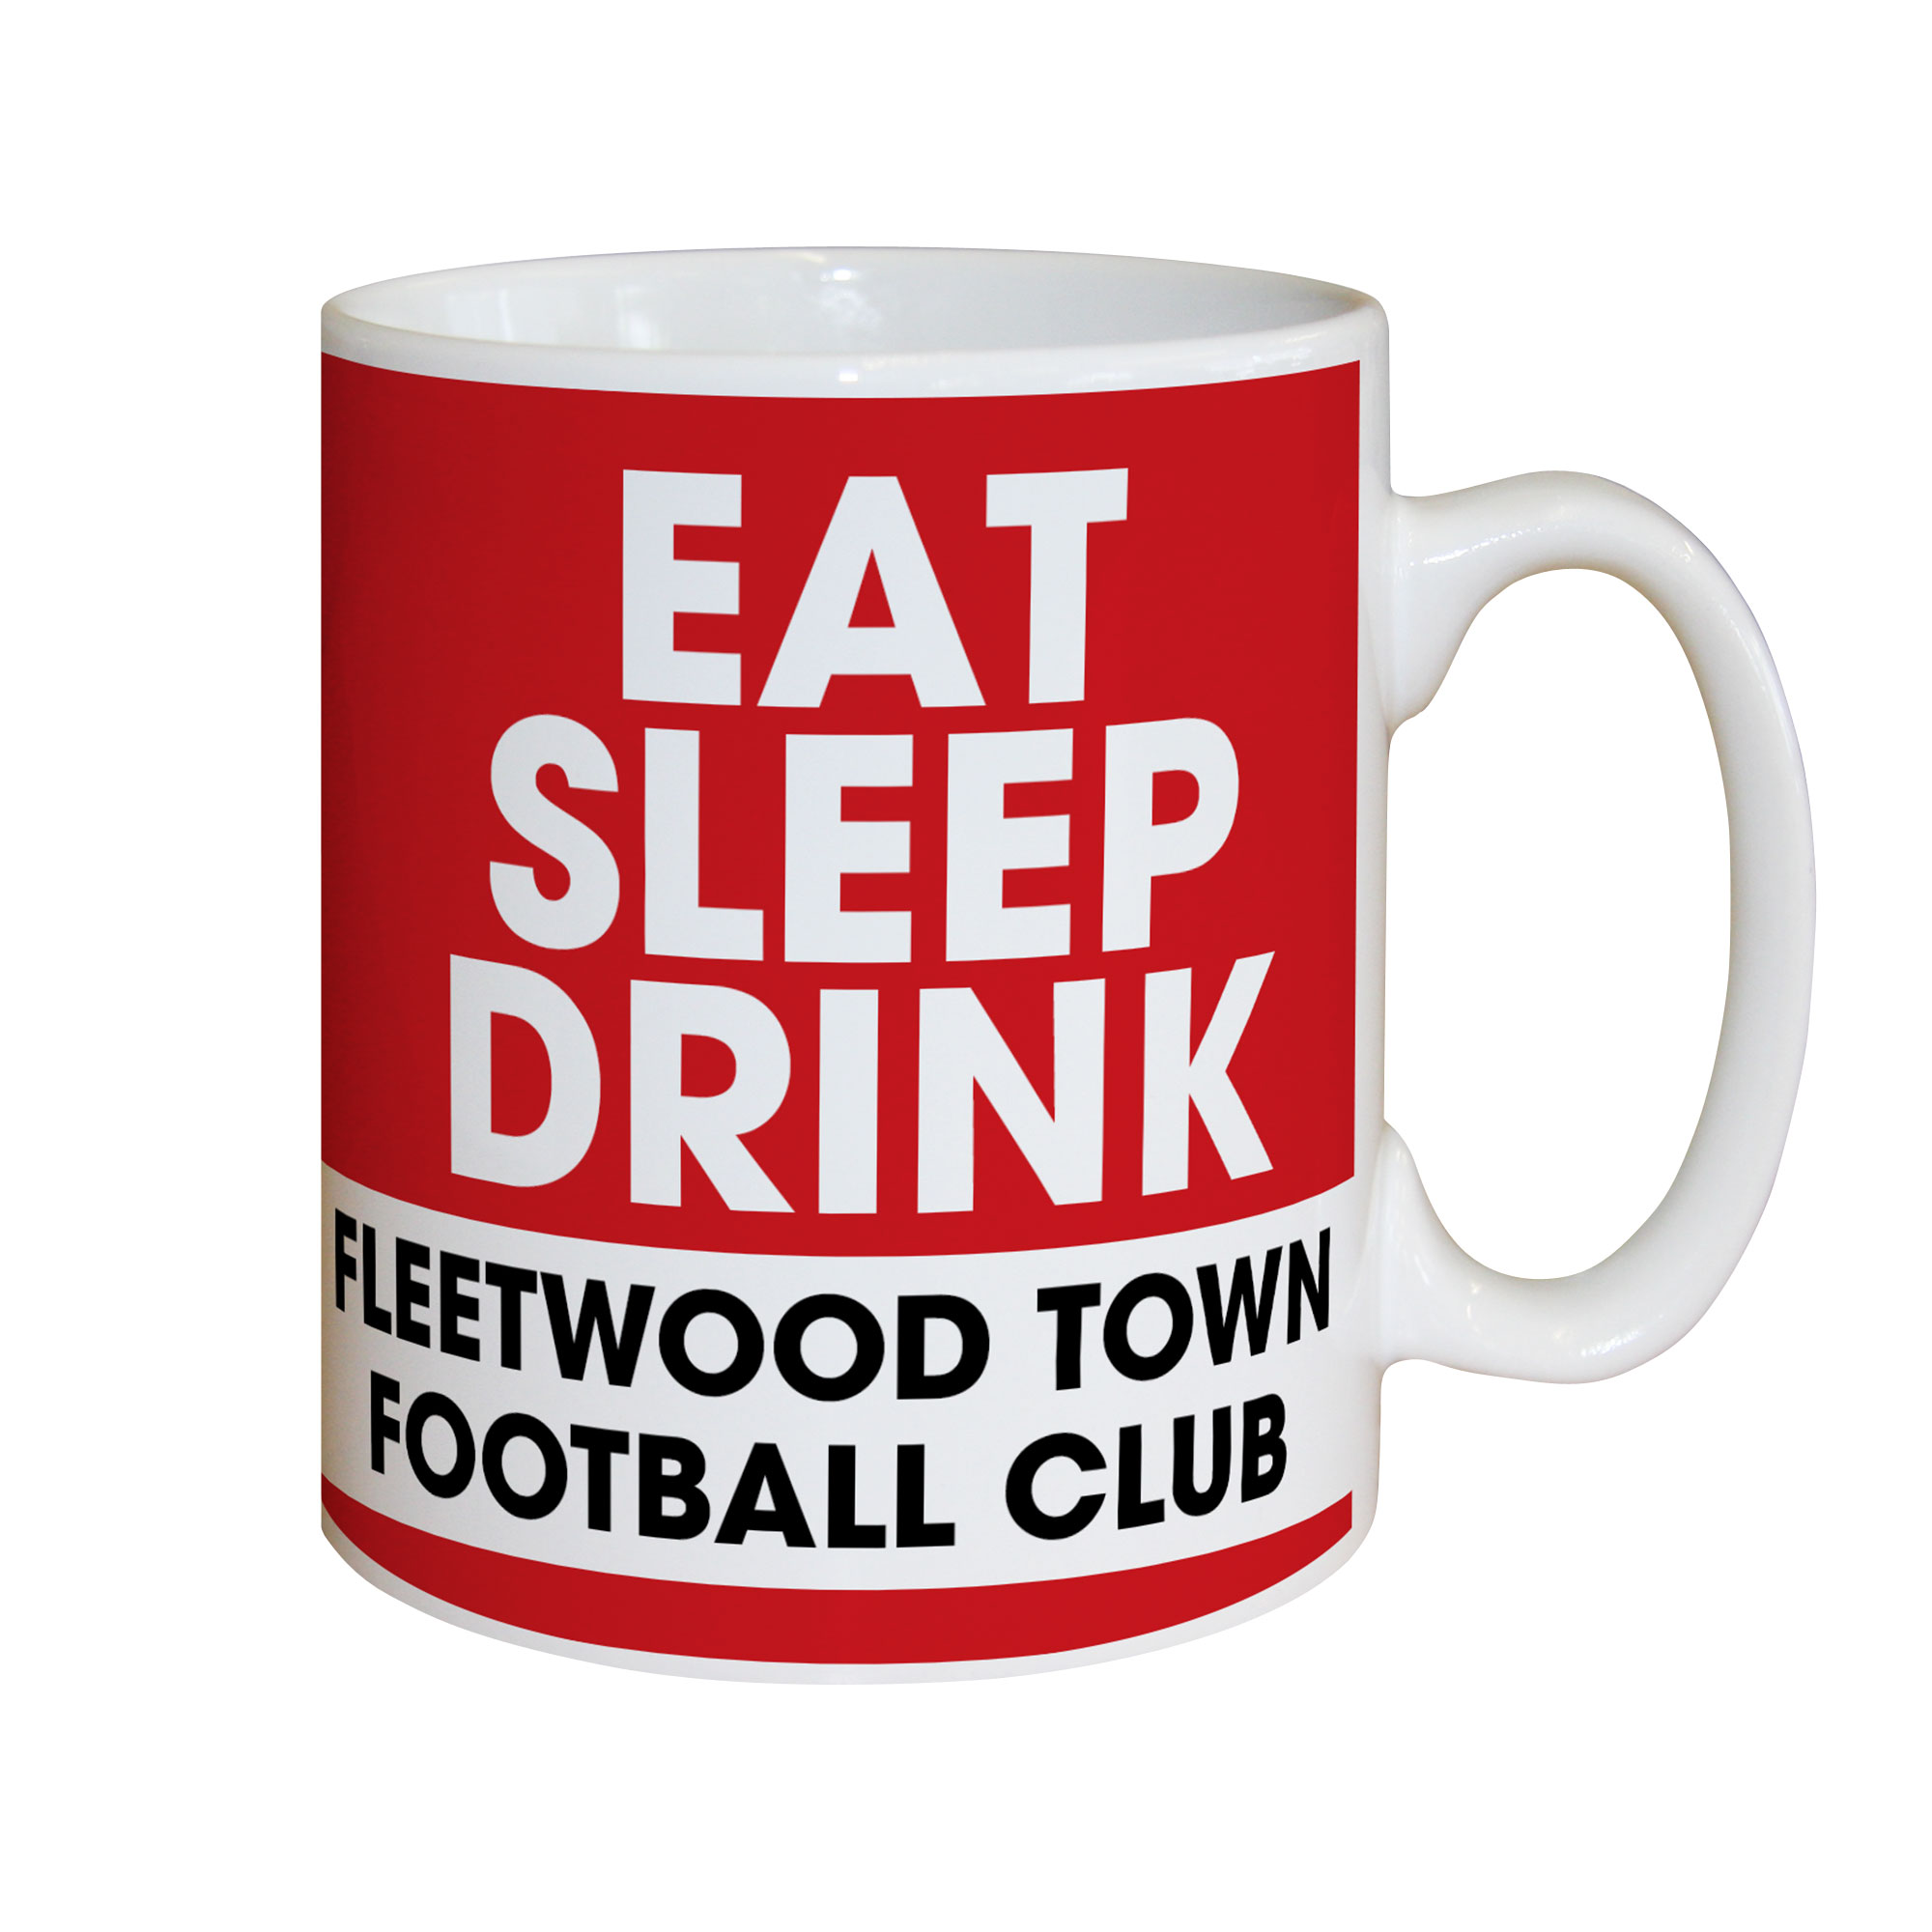 Fleetwood Town FC Eat Sleep Drink Mug